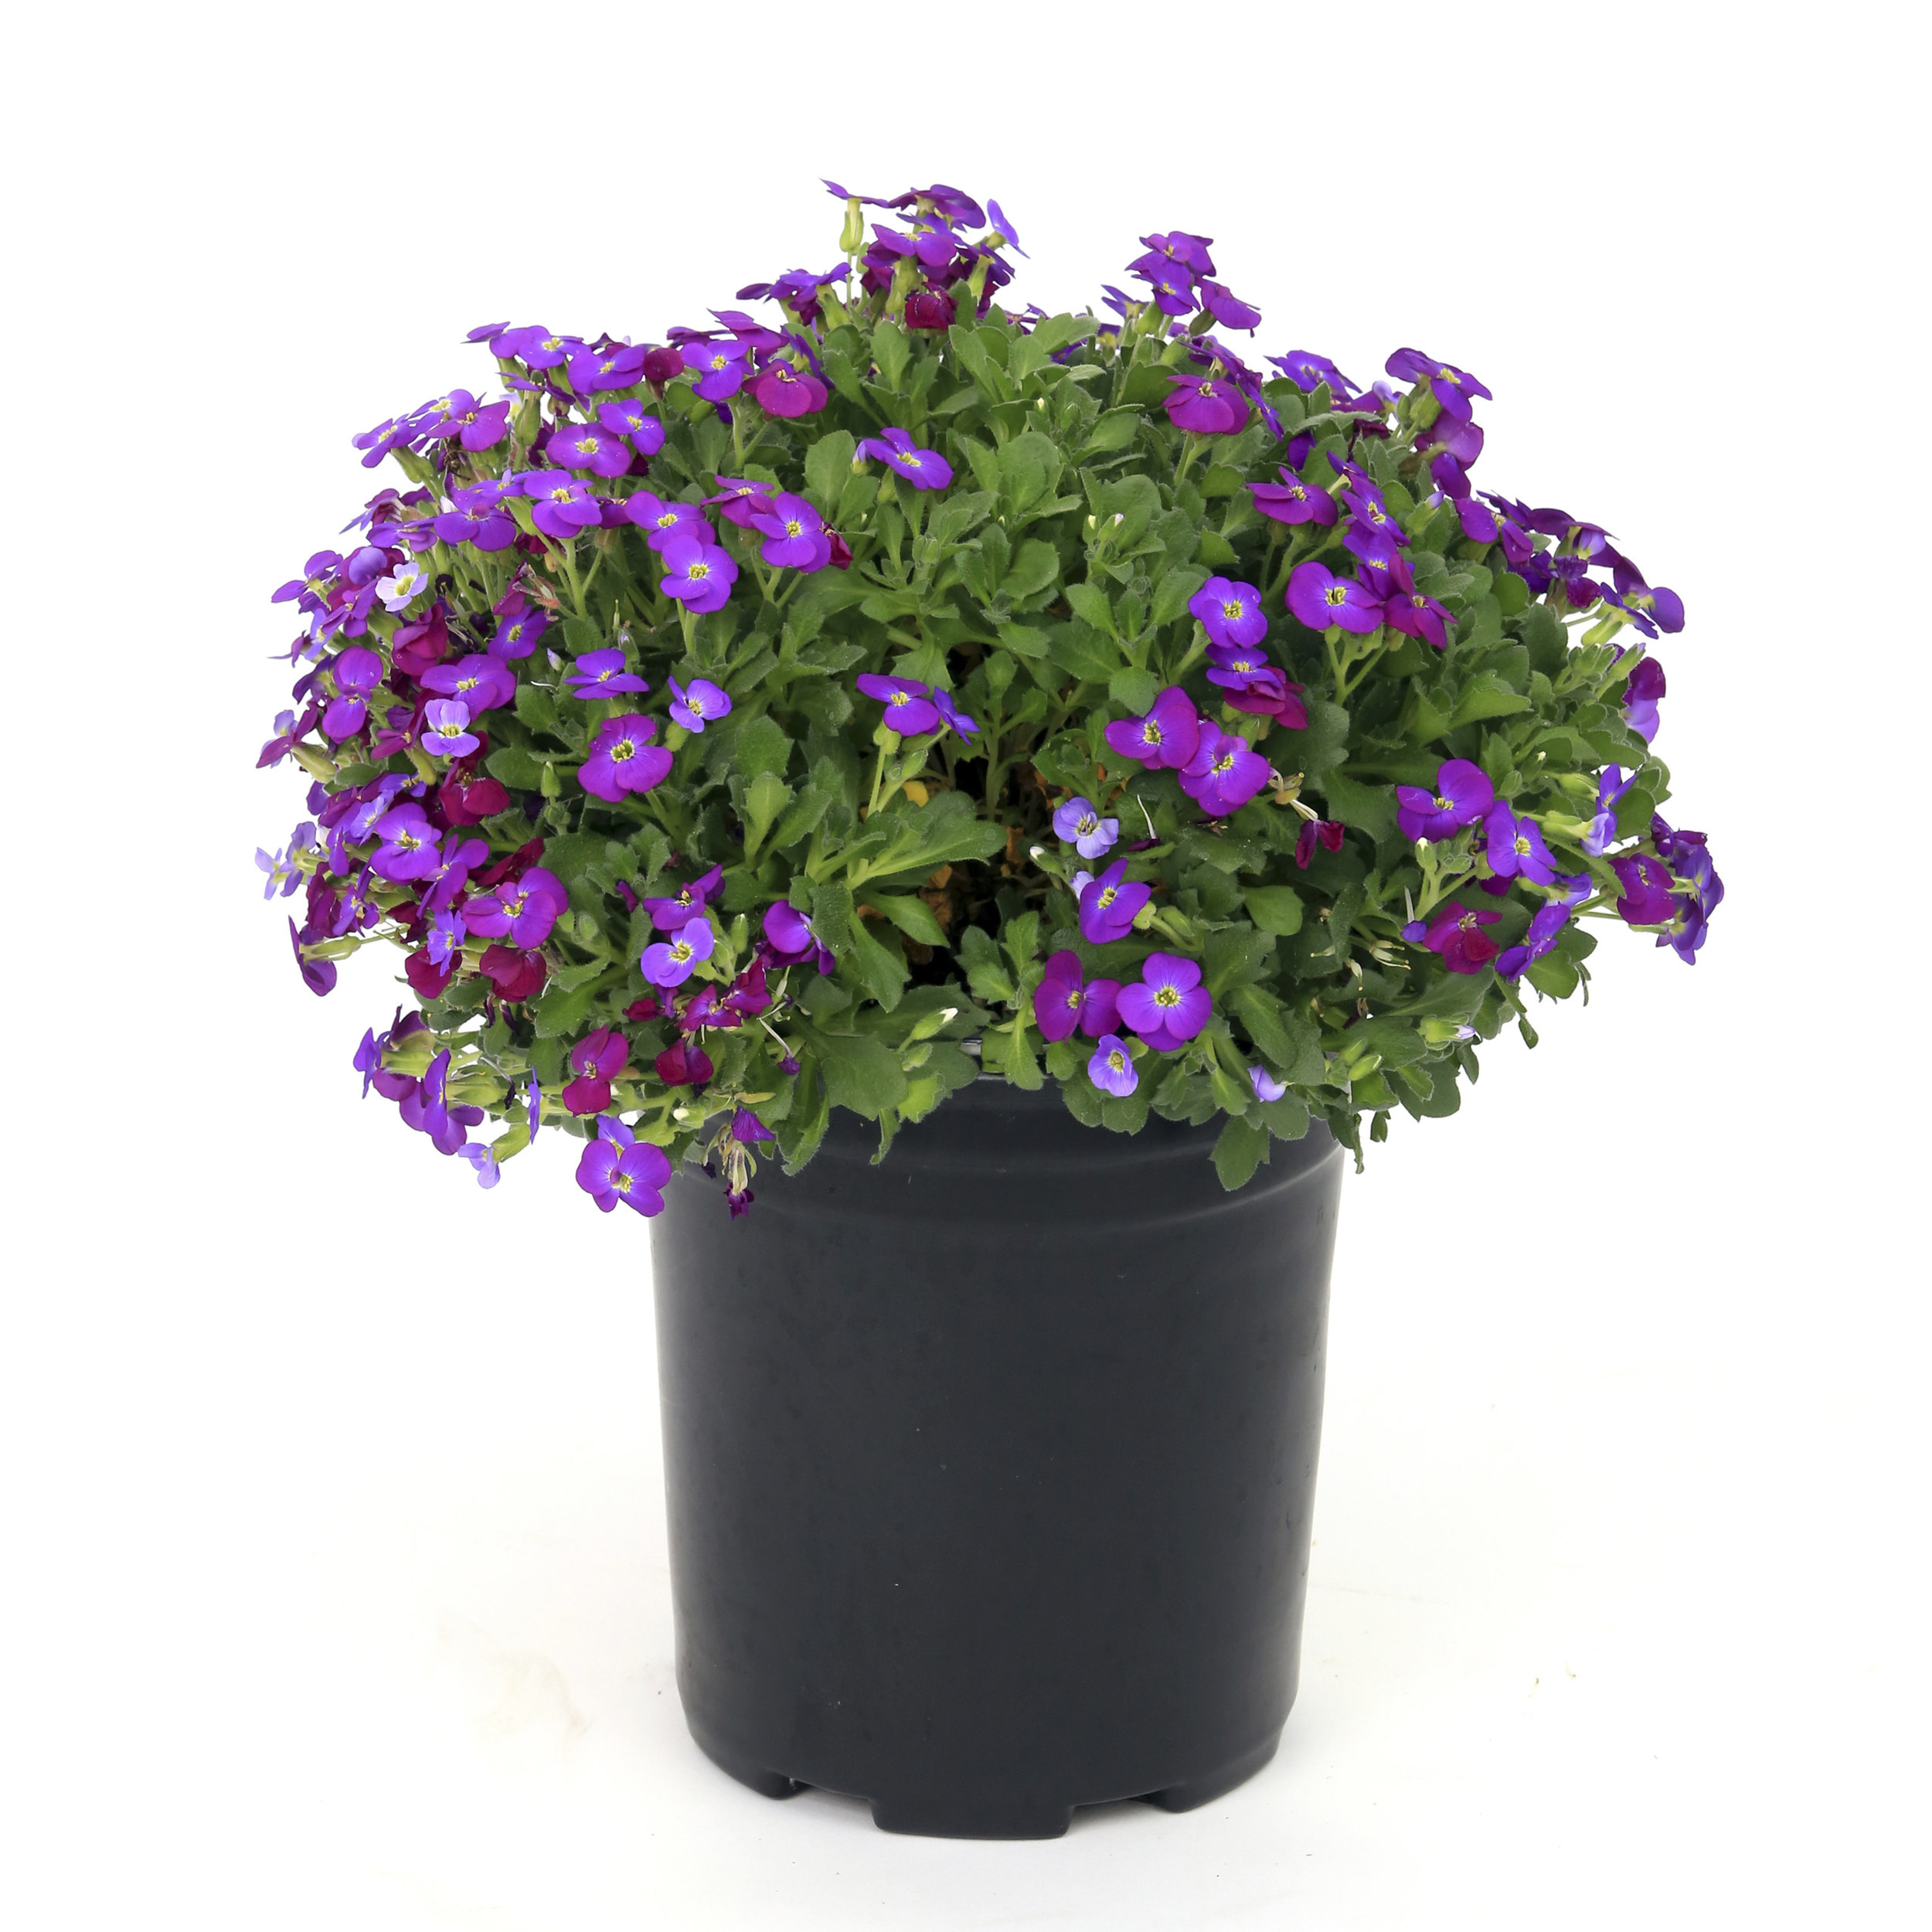 HR_Vegetative_Aubrieta_Axcent™_Axcent™_Deep_Purple_Imp._70045536.jpg